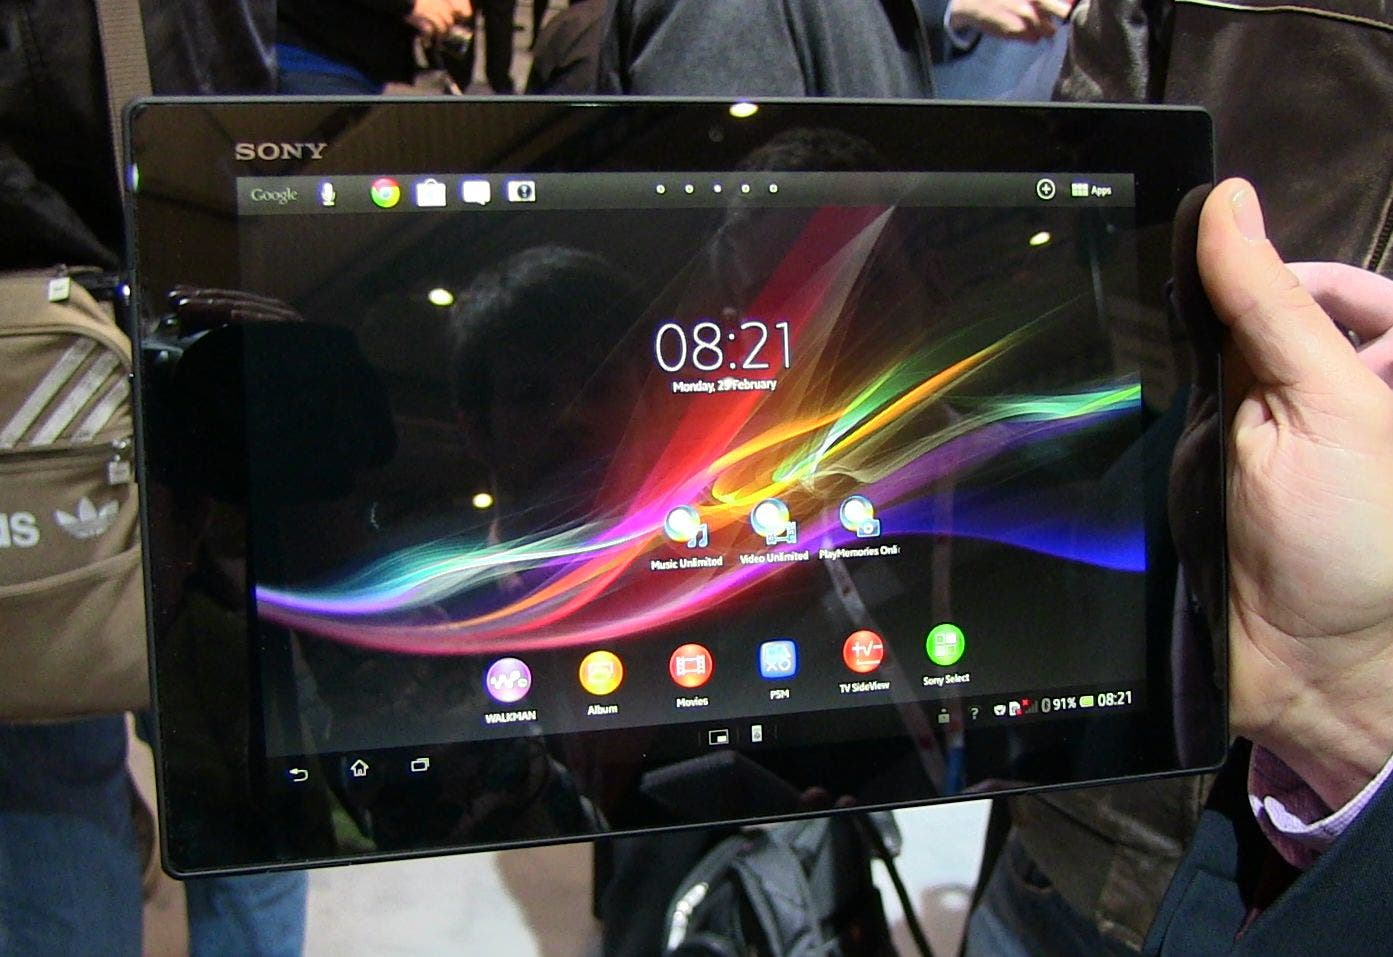 Neues Sony Xperia Tablet mit Snapdragon 800 High-End Quad-Core zur IFA 2013?